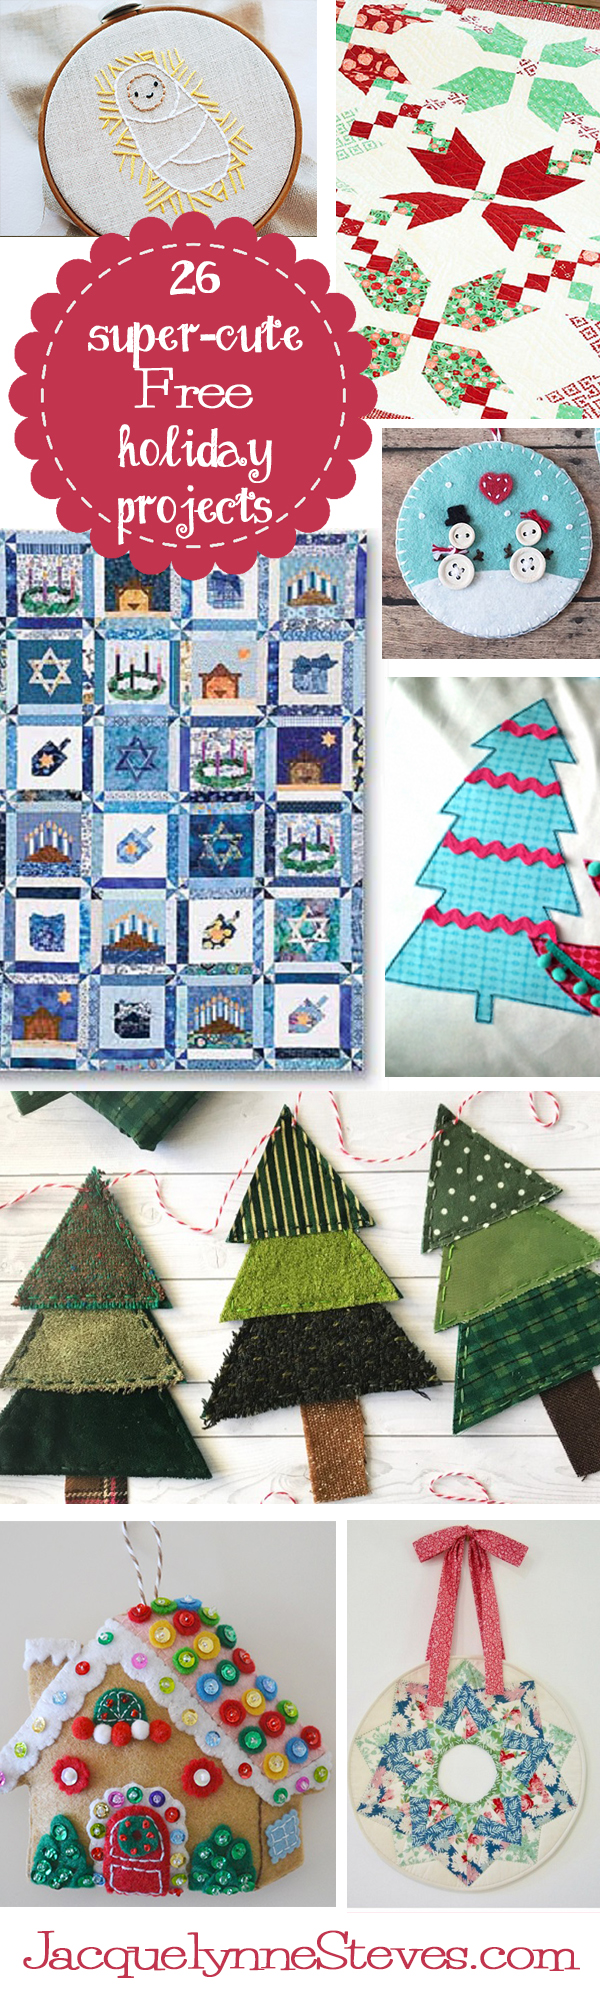 26 Free Holiday Projects!